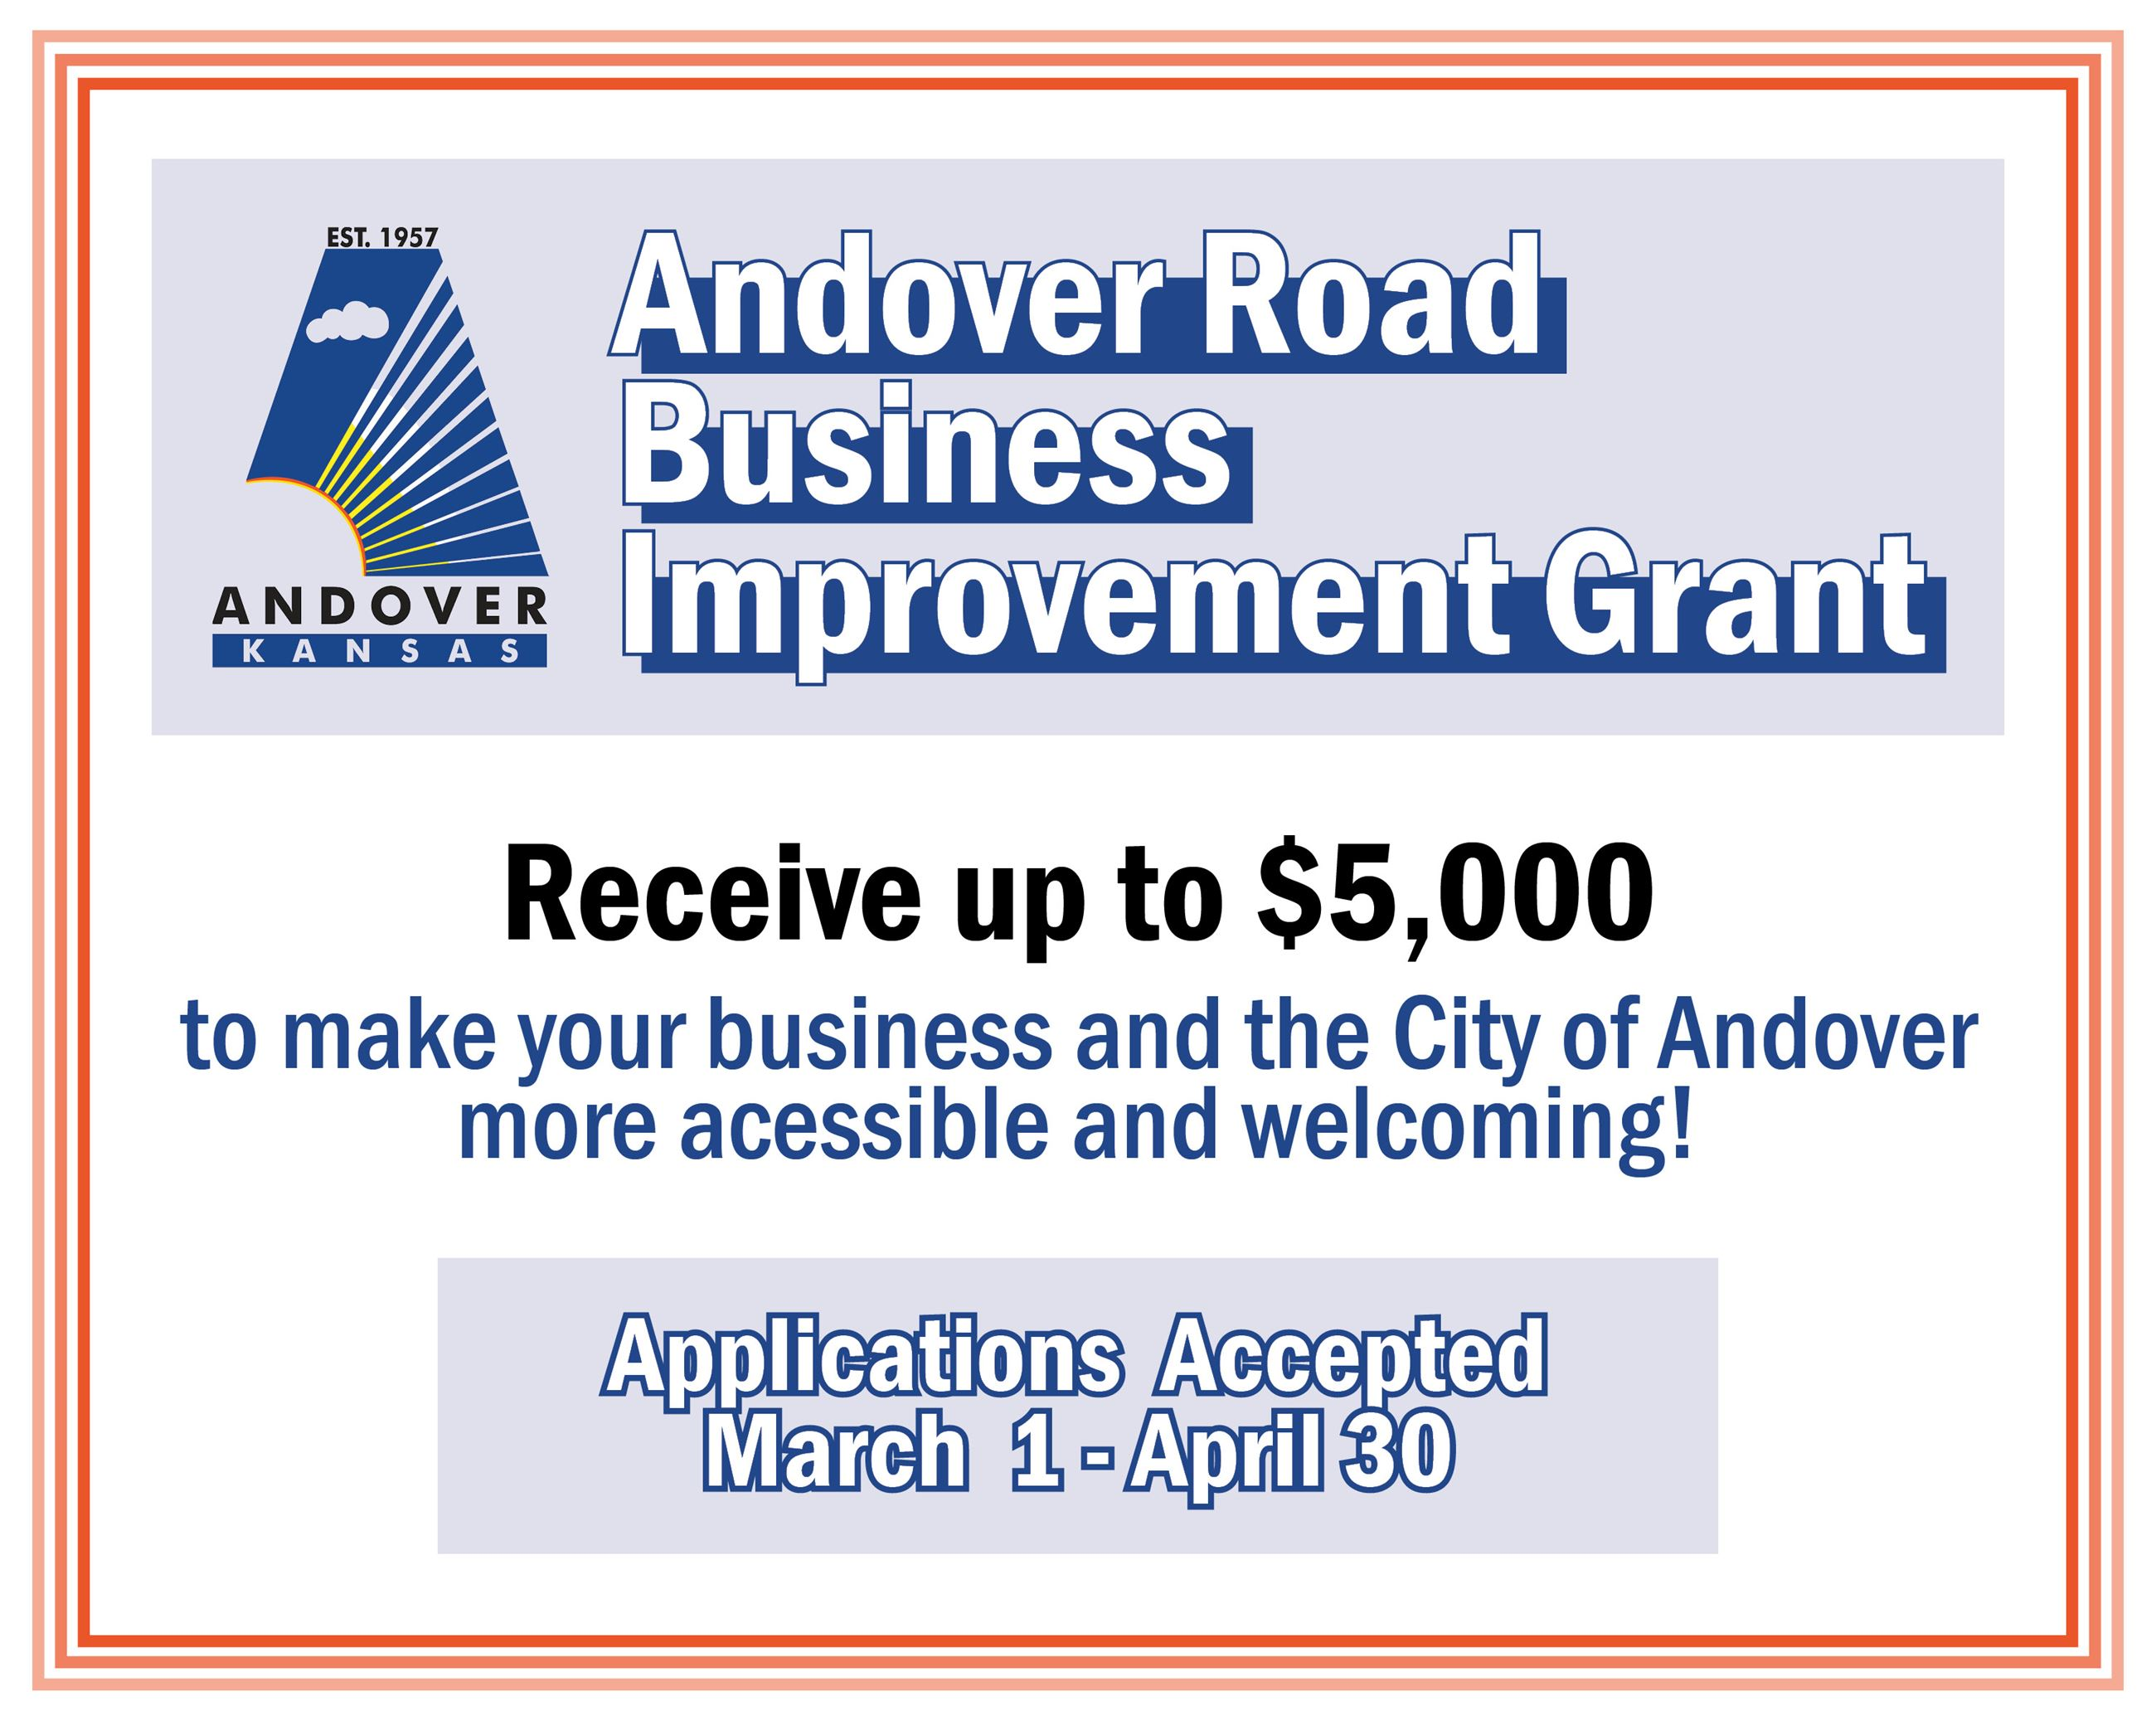 2021 Andover Road Business Grant Applications will be accepted March 1-April 30